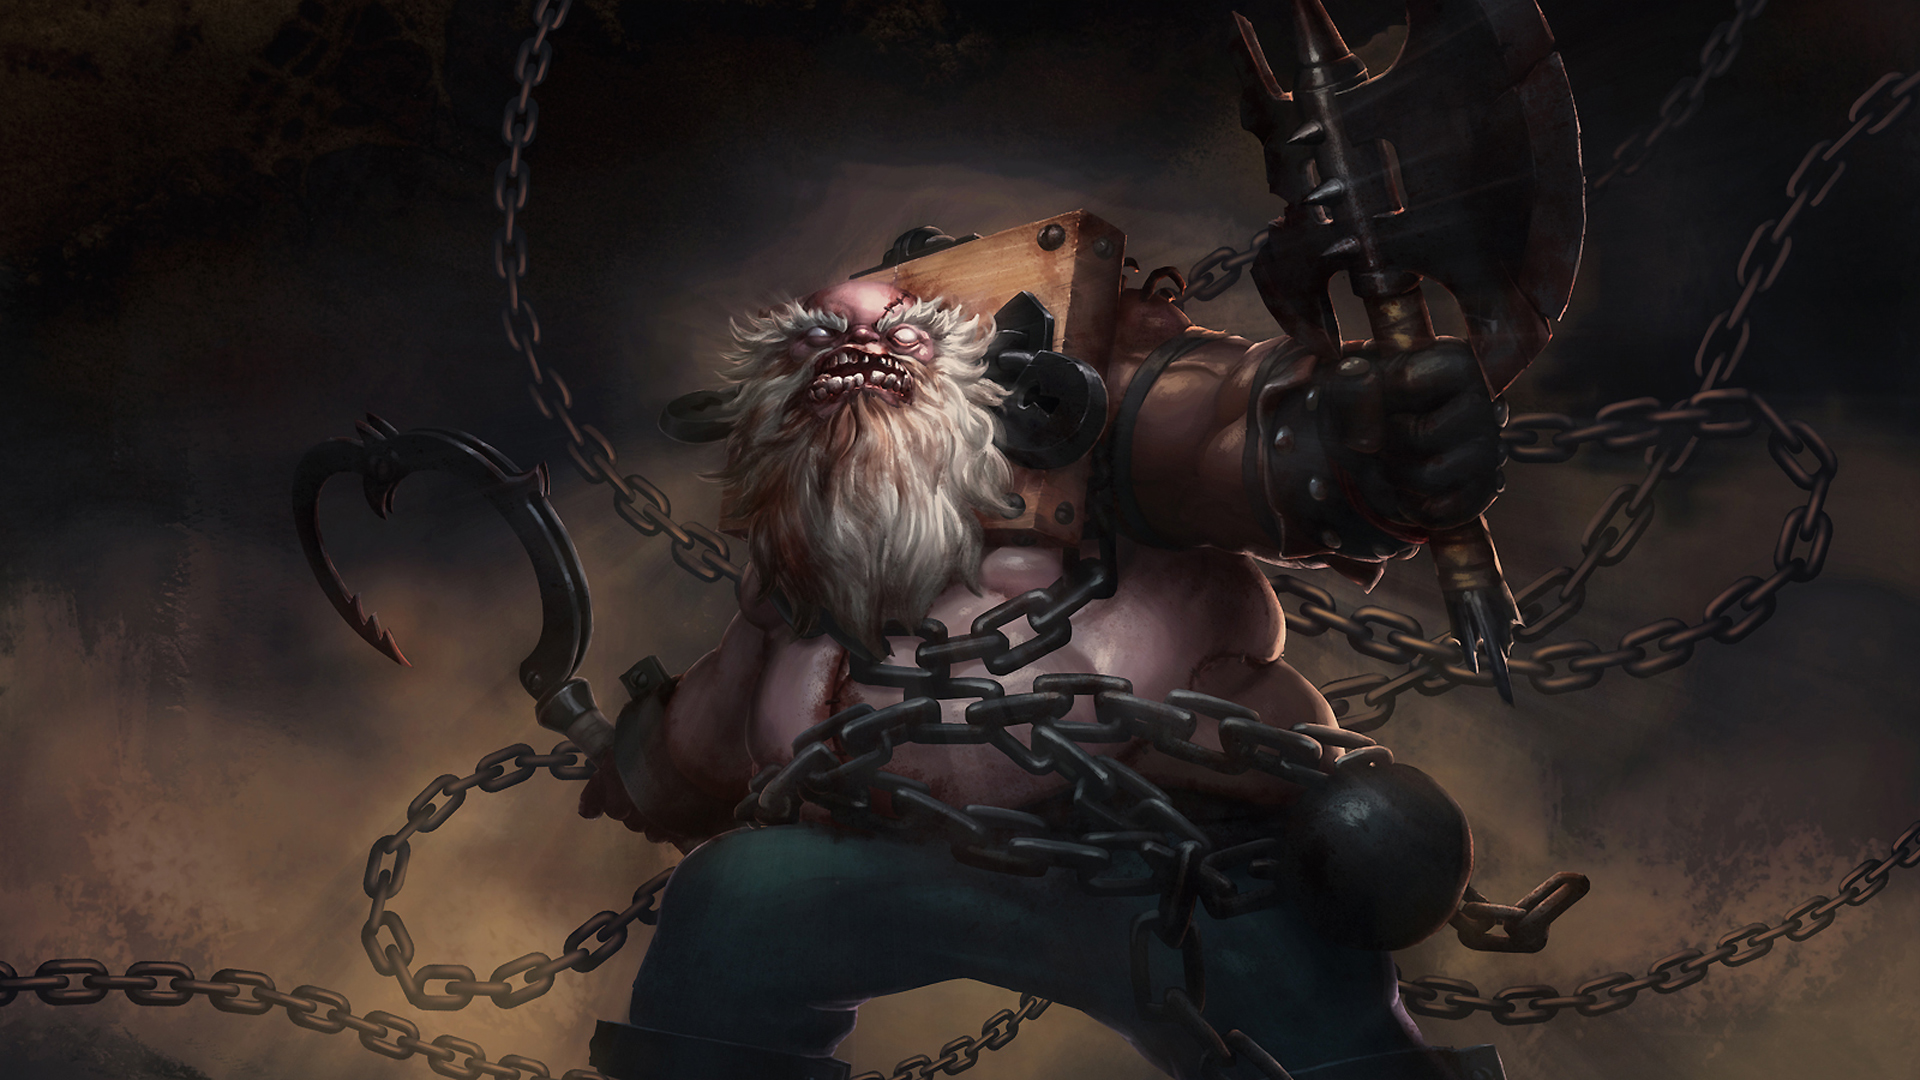 Pudge Chains of the Black Death